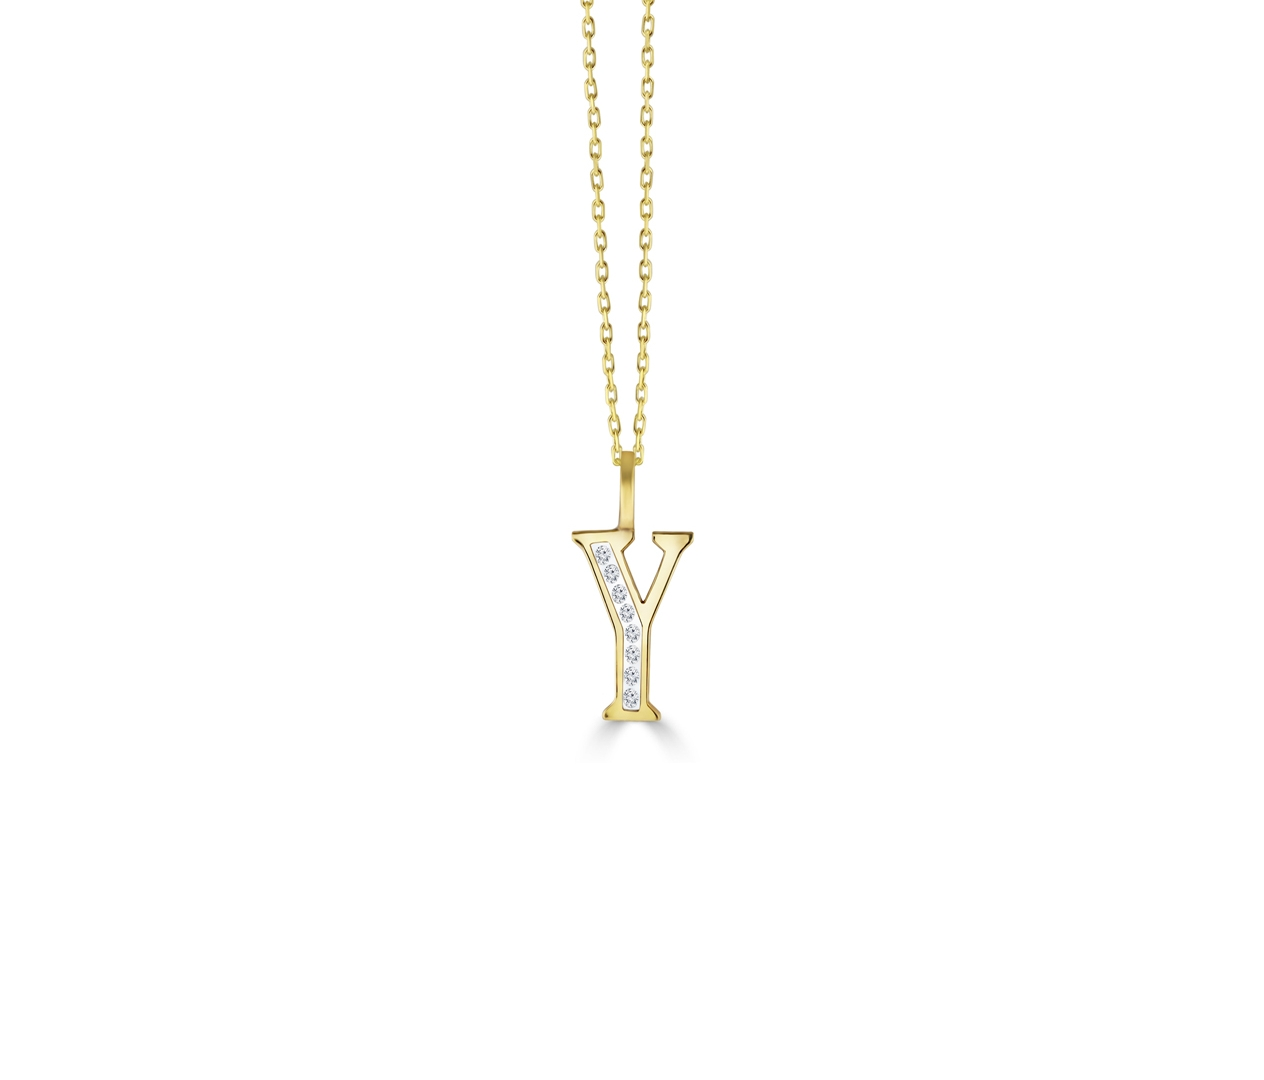 Y' Alphabet Pendant chain with Diamonds